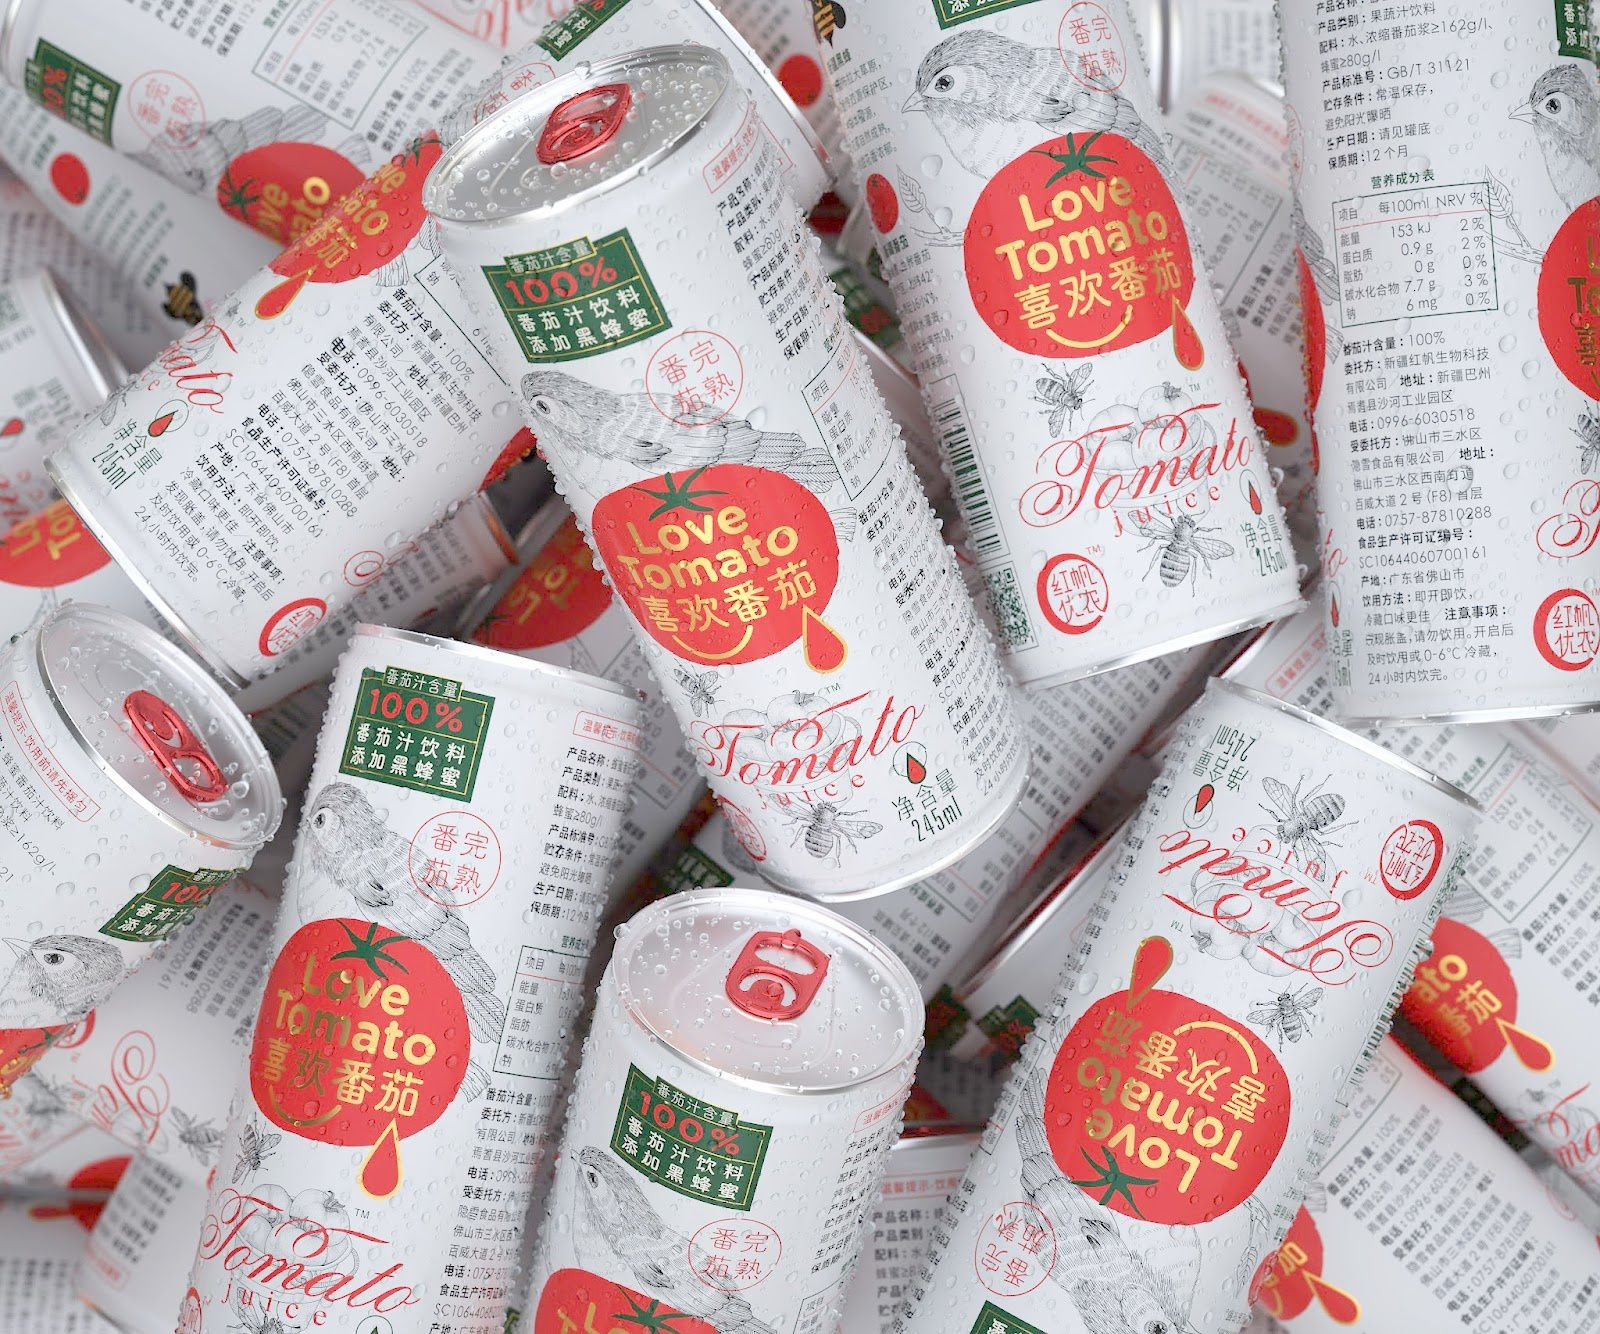 Love Tomato (jus de tomates) I Design : Pica Packaging Design Lab, Pékin, Chine (juillet 2019)